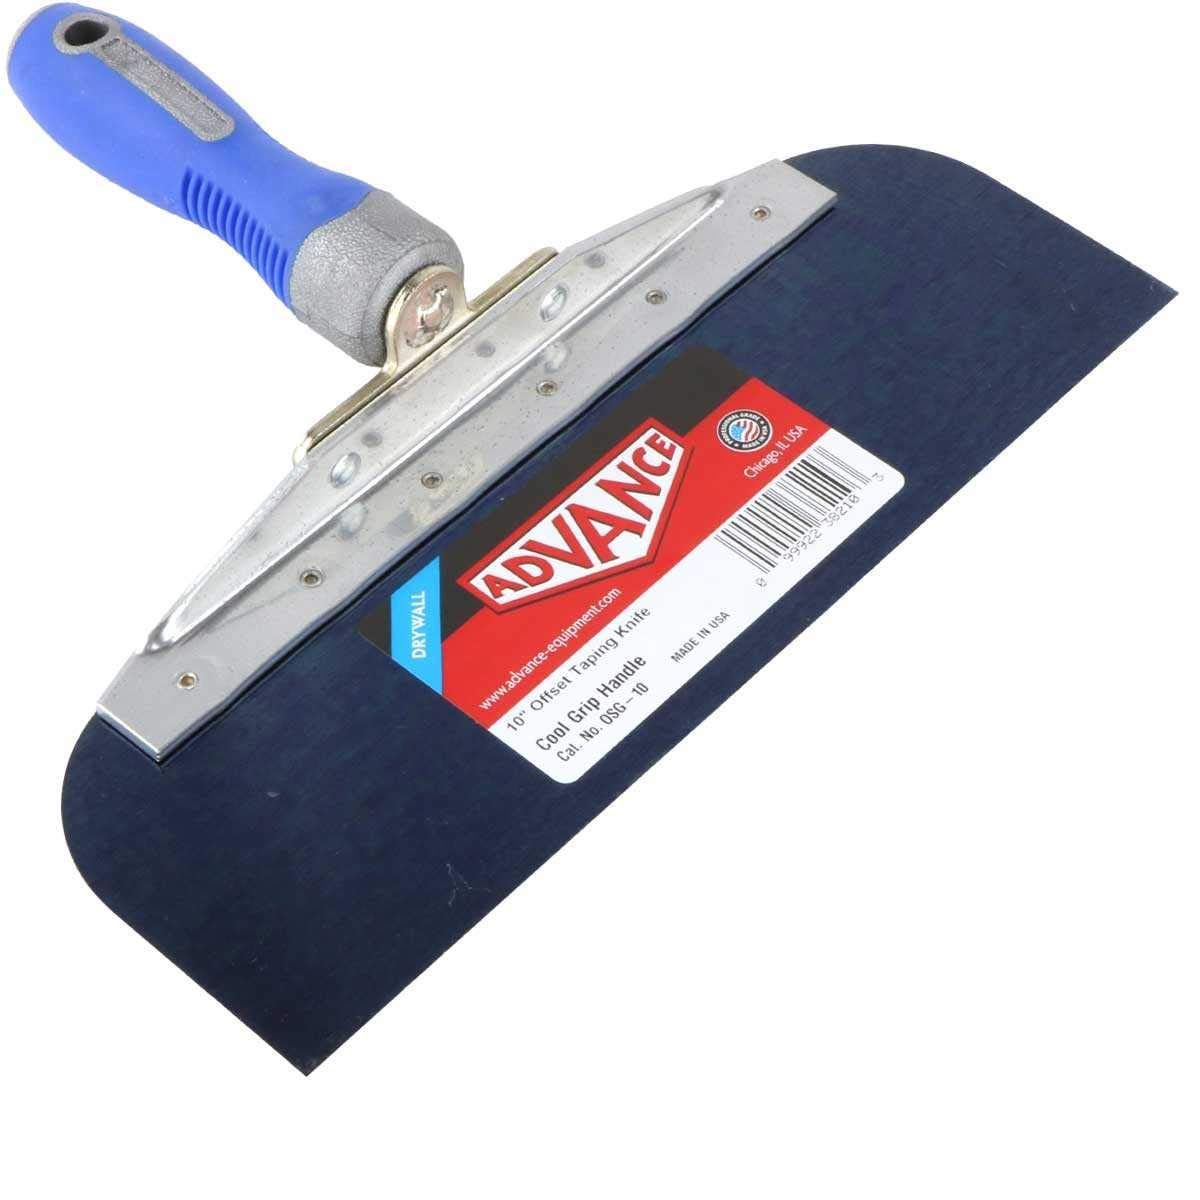 Drywall Offset Taping Knife 10'' & 12'' Blue Steel Knives Set by Advance (Image #2)